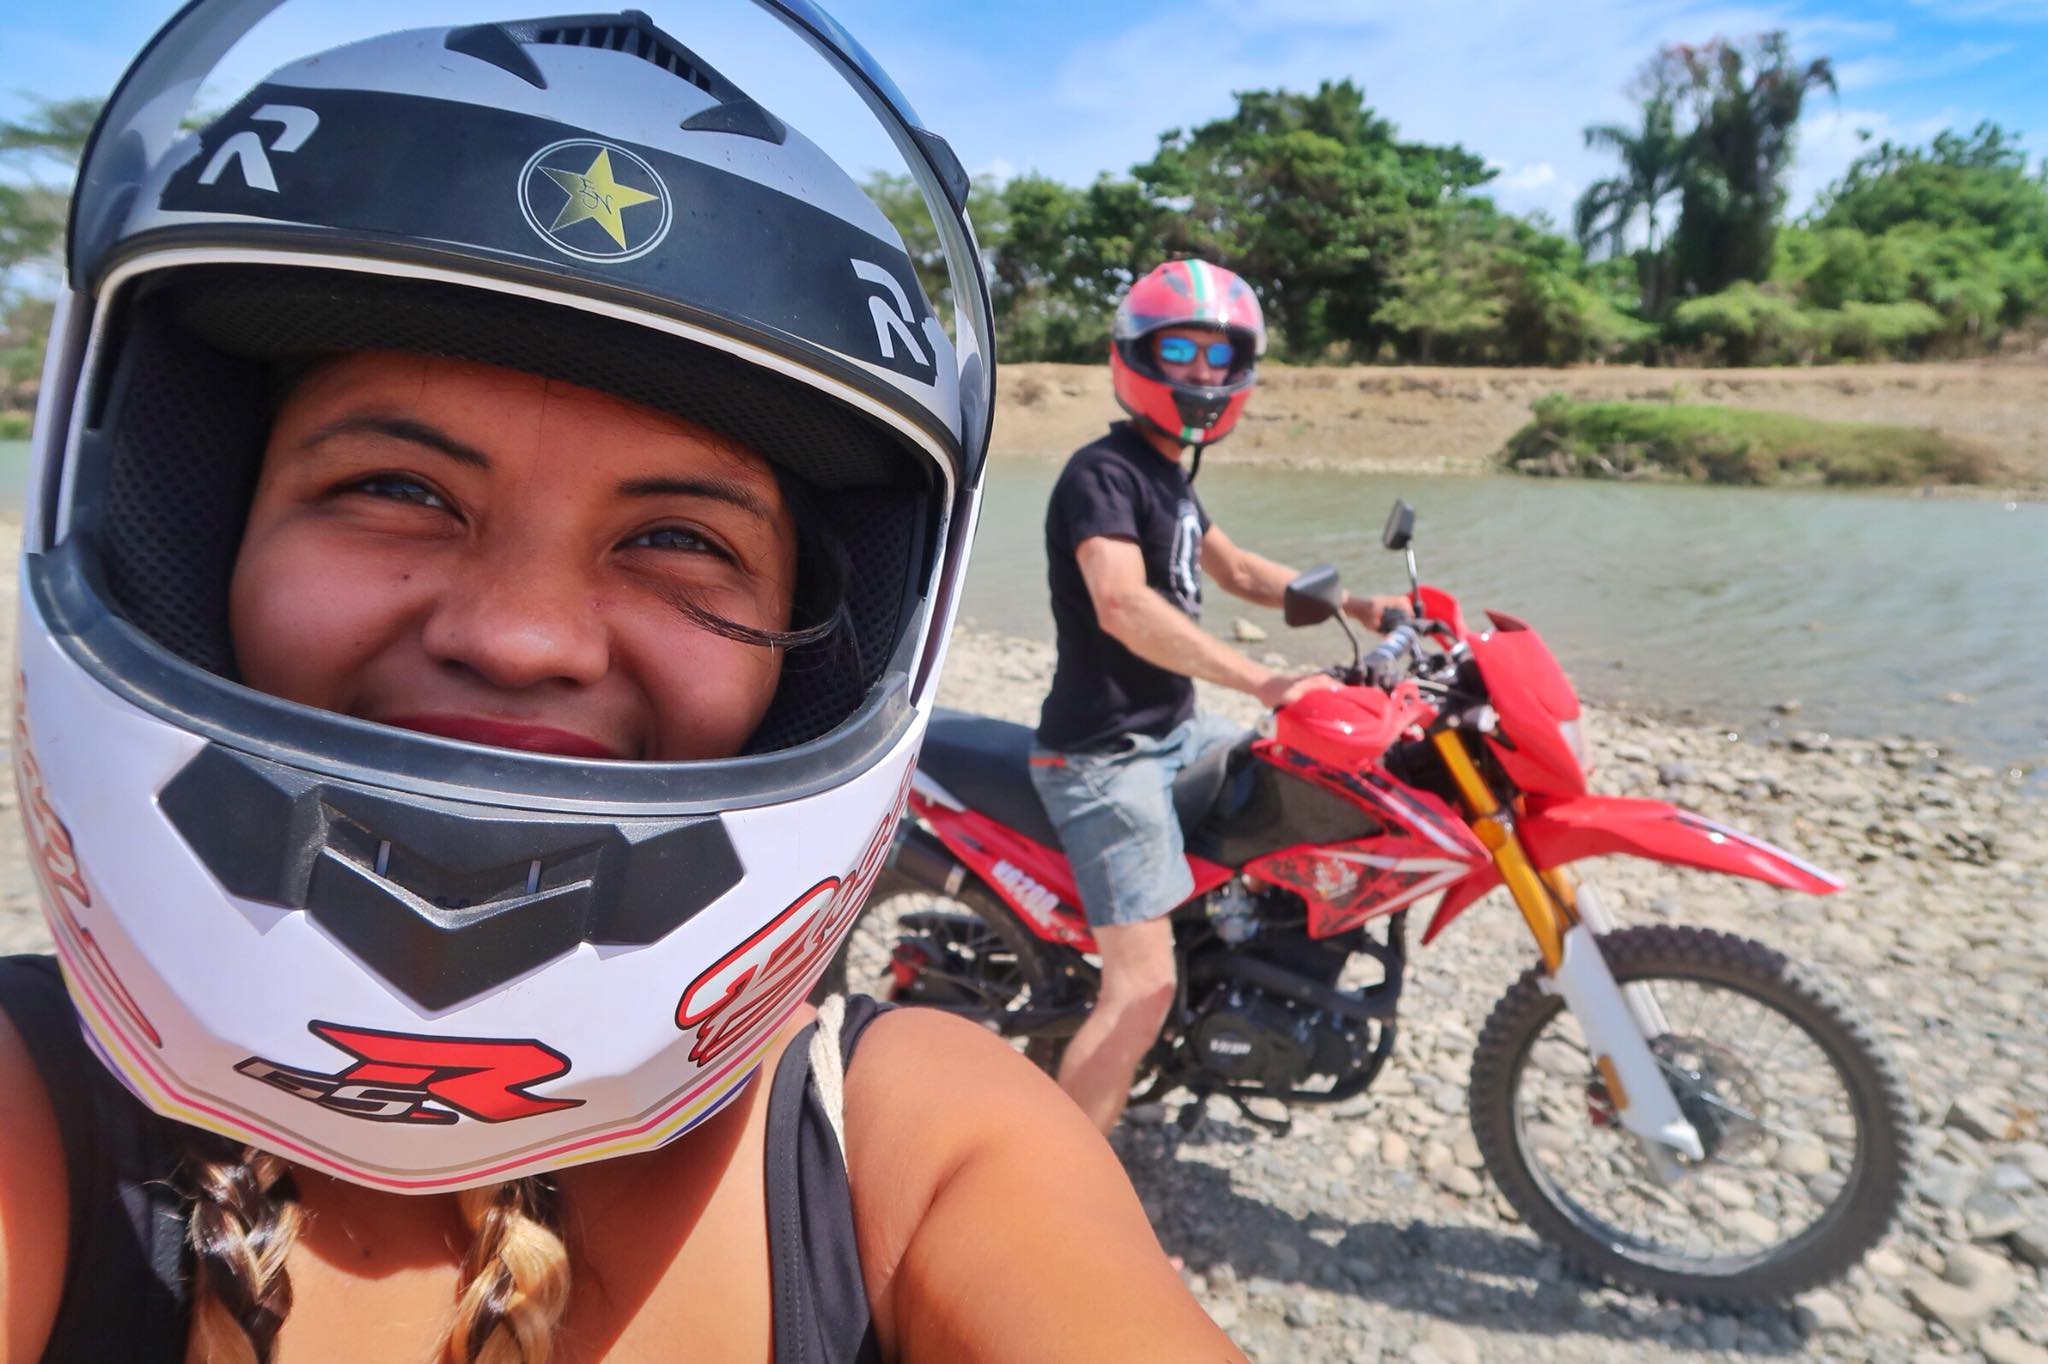 Liveaboard Life Day 156: Back to daily blogging and motorbike trip to La Isabela, Dominican Republic 🏍